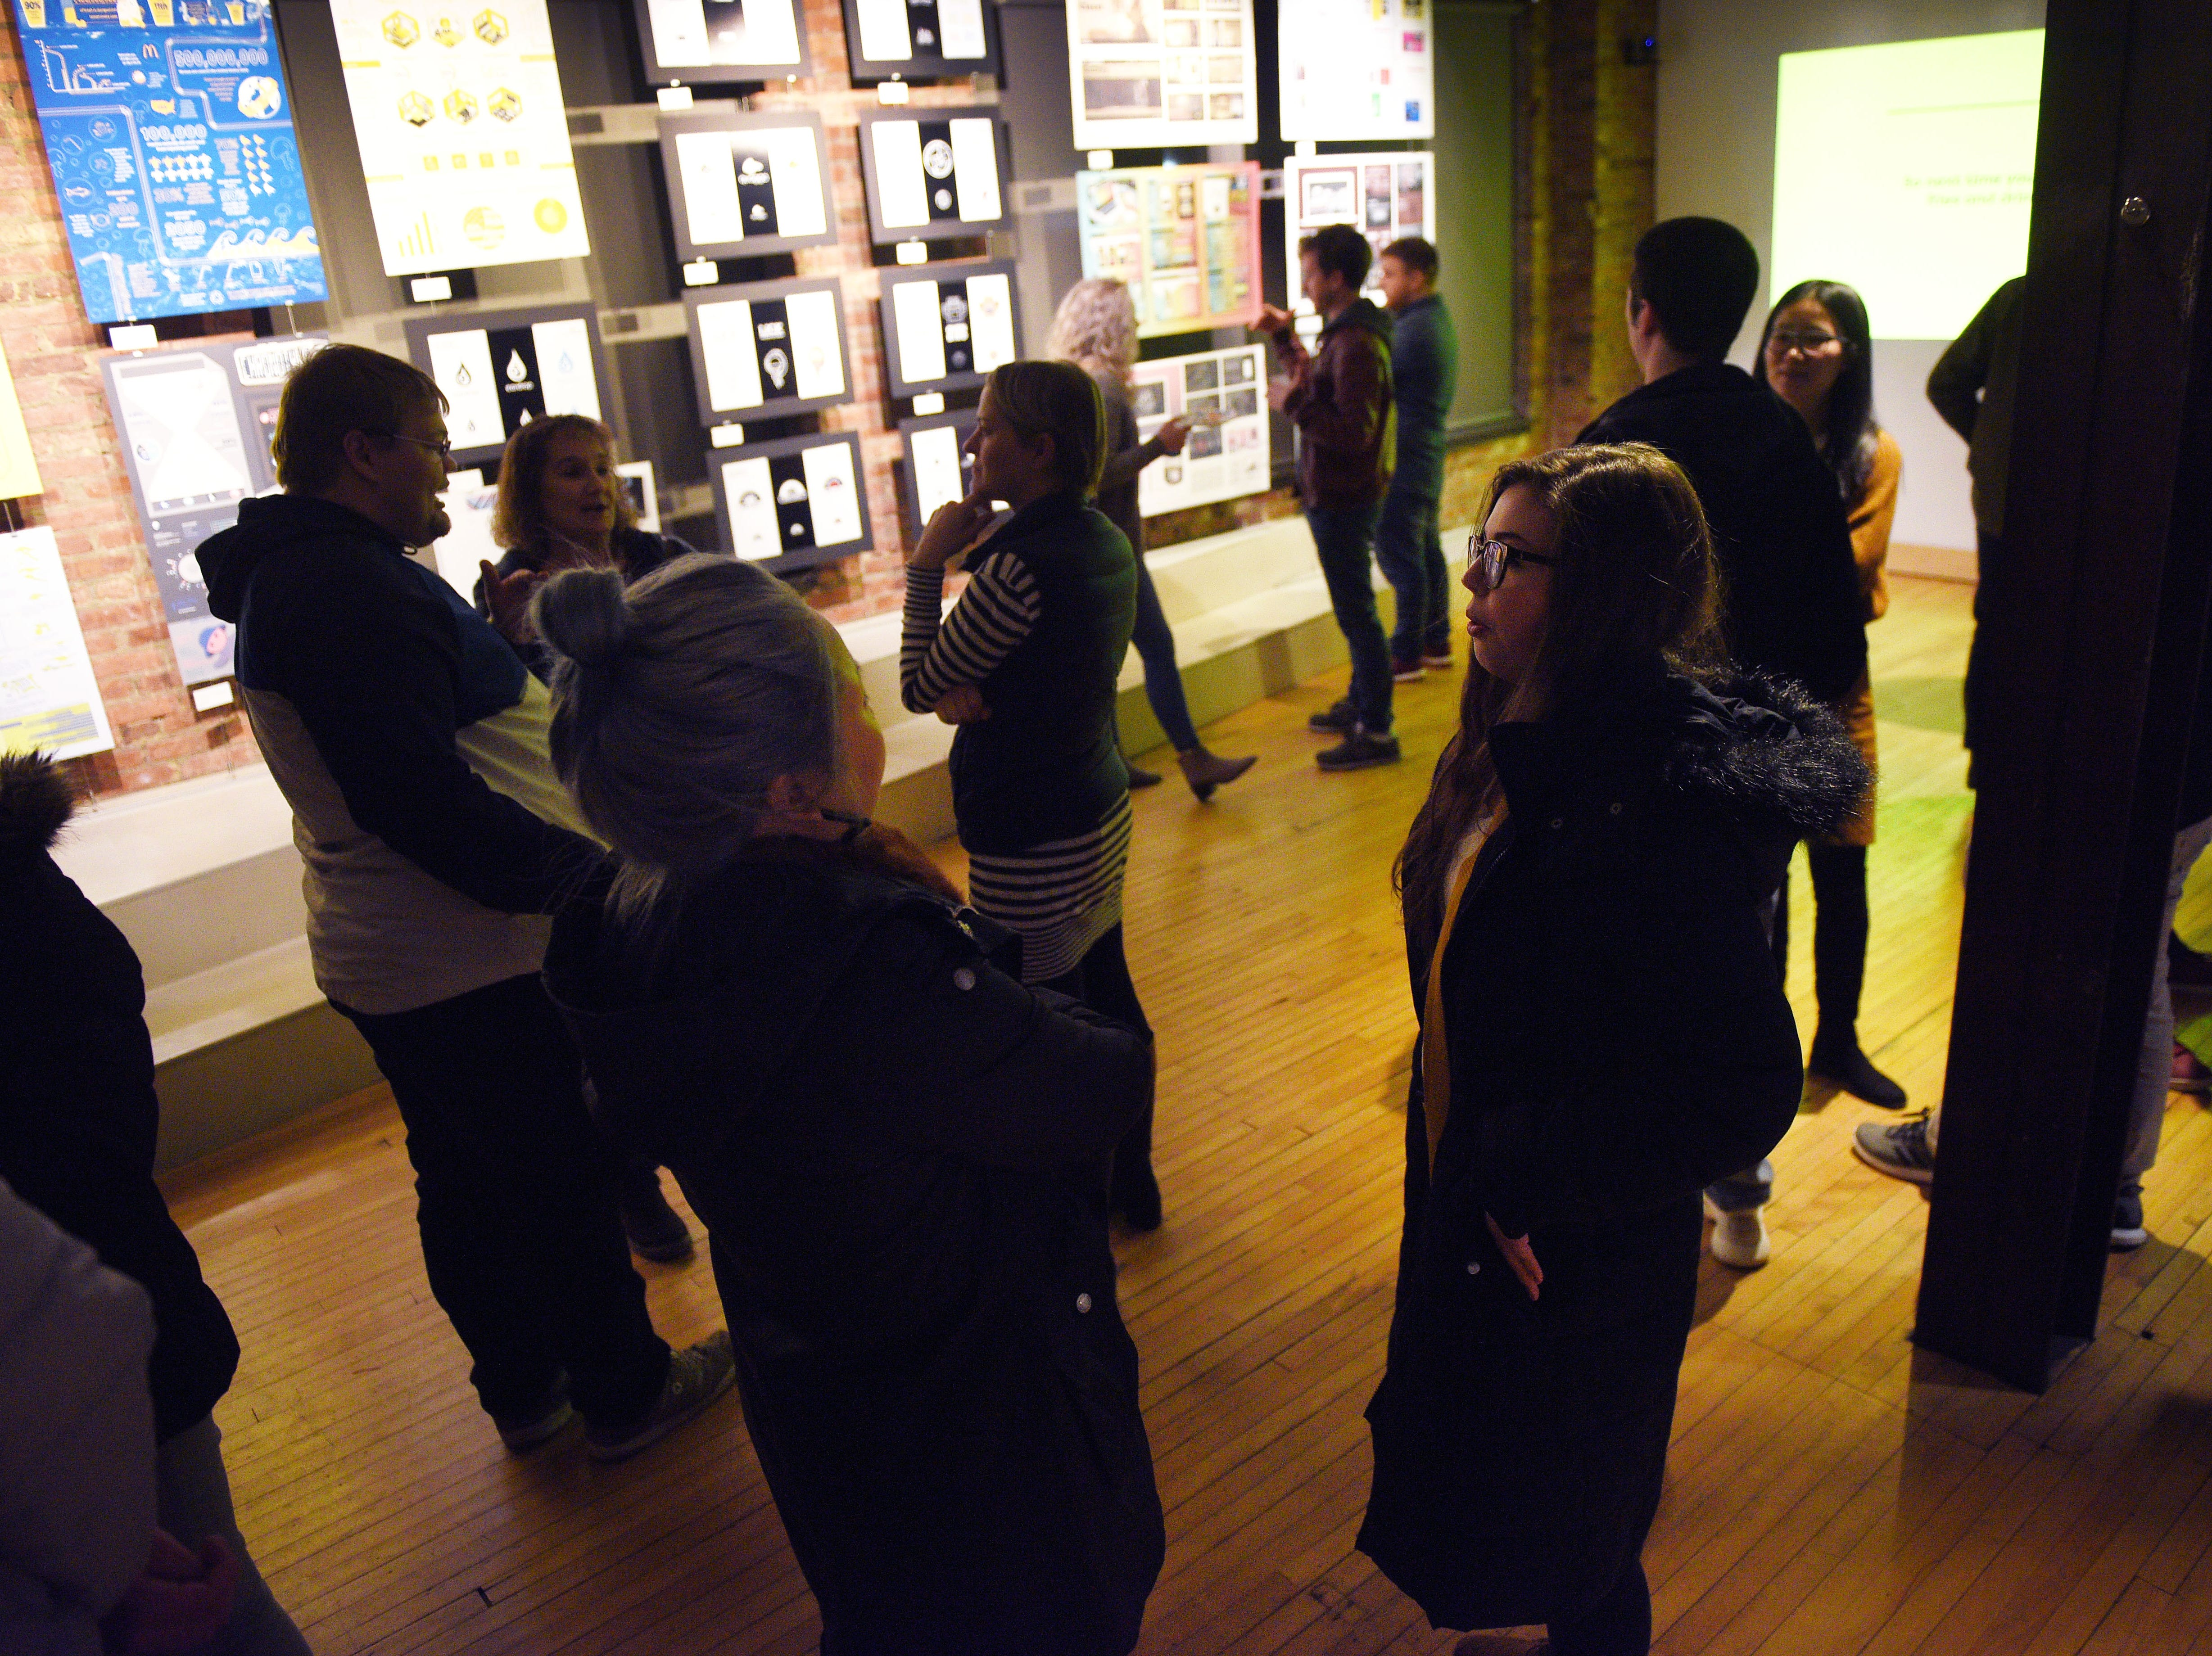 The Sioux Falls Design Center hosts USD Graphic Design Student work show Wednesday, Nov. 7, in downtown Sioux Falls.